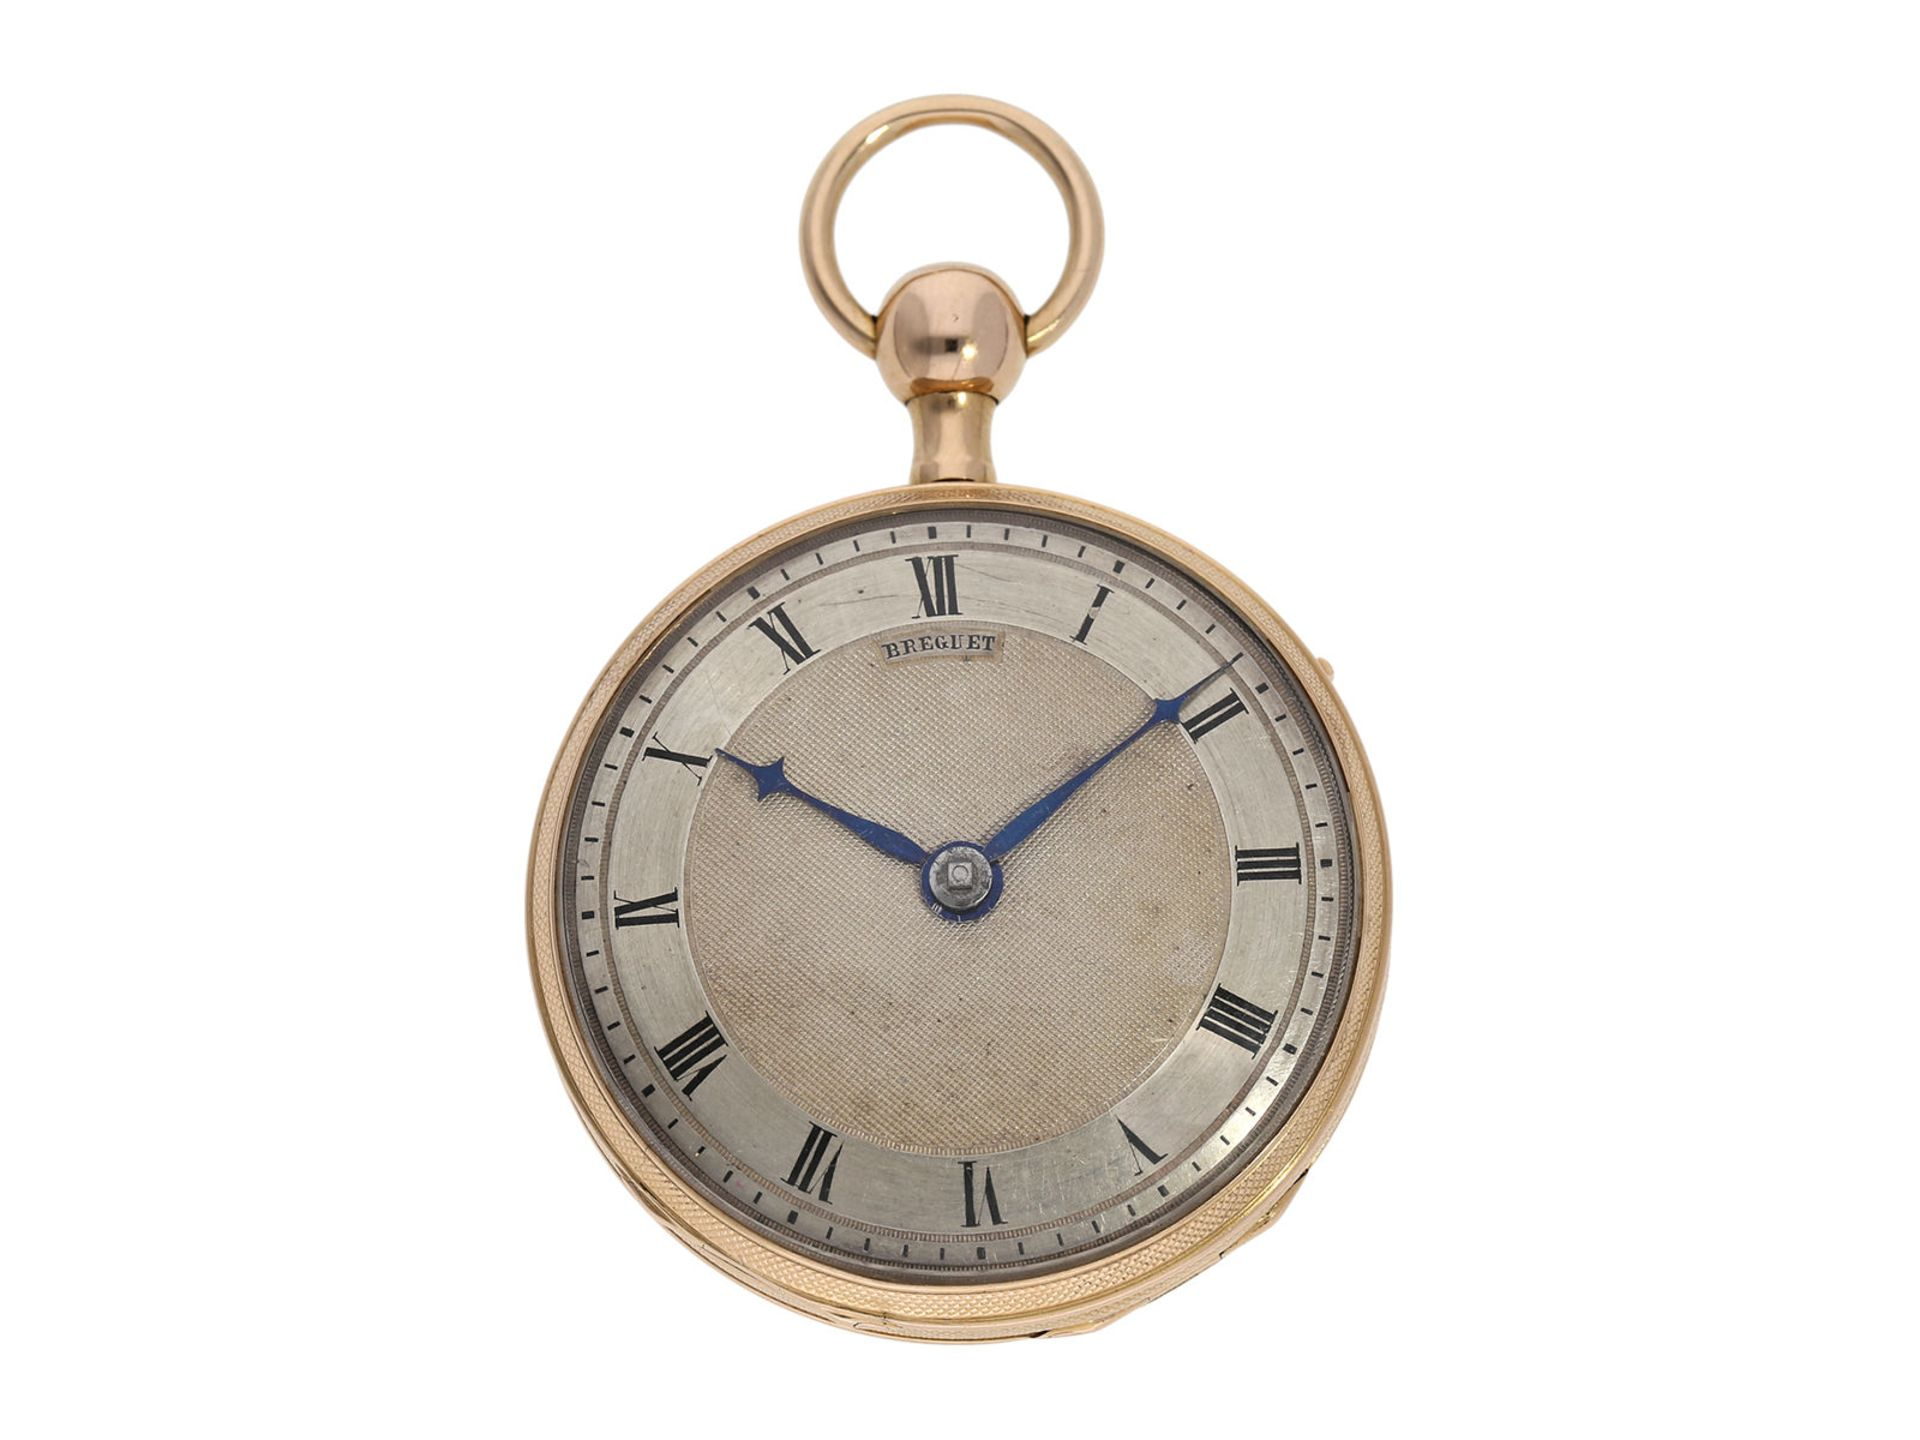 Pocket watch: pink gold verge watch repeater, signed Breguet, ca. 1820